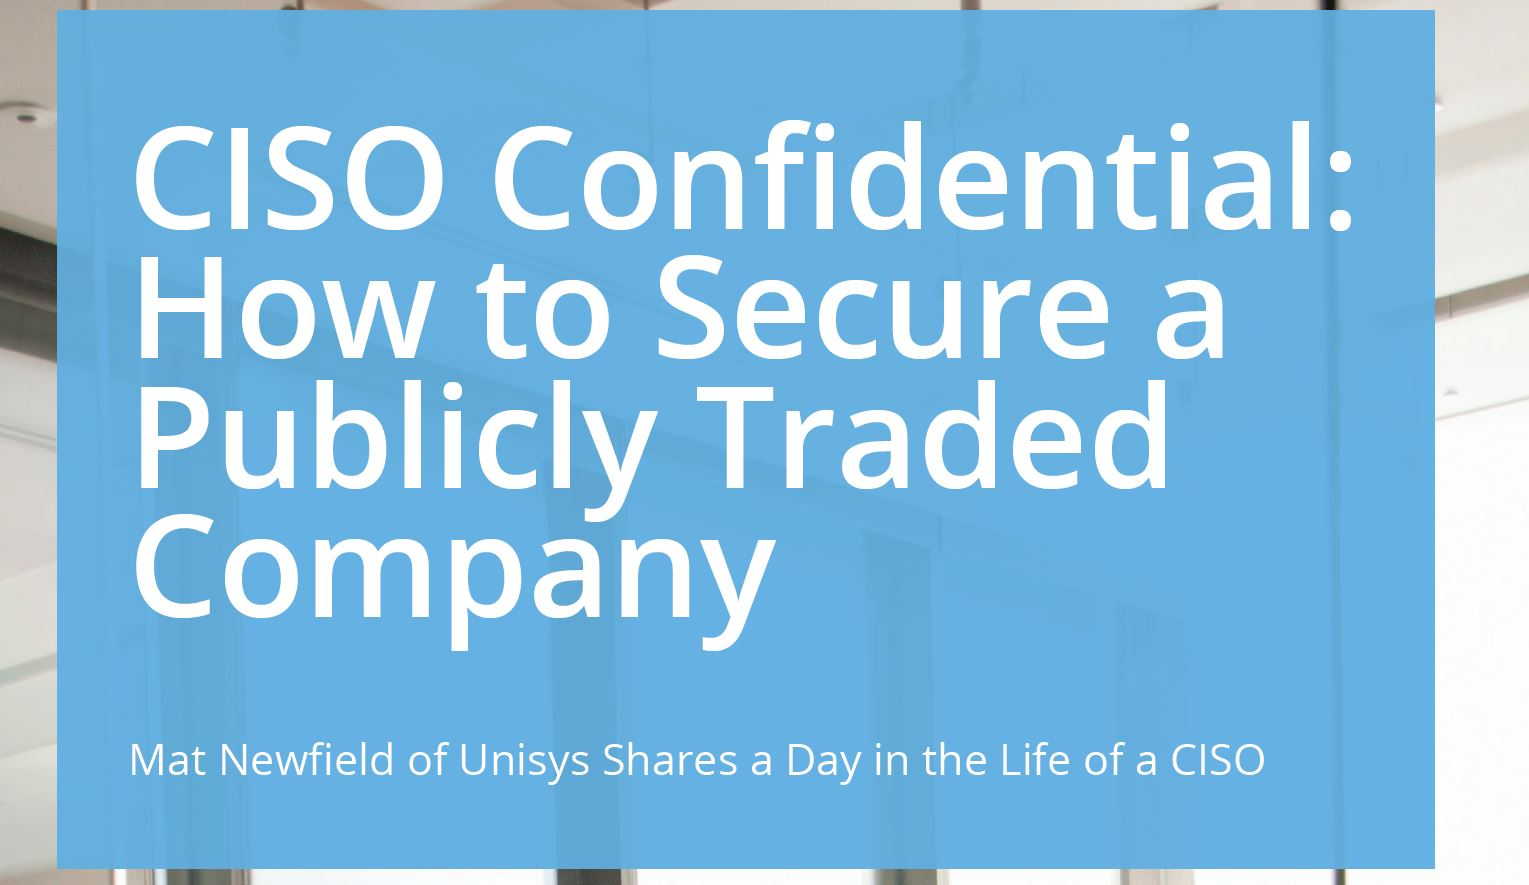 CISO Confidential: How to Secure a Publicly Traded Company